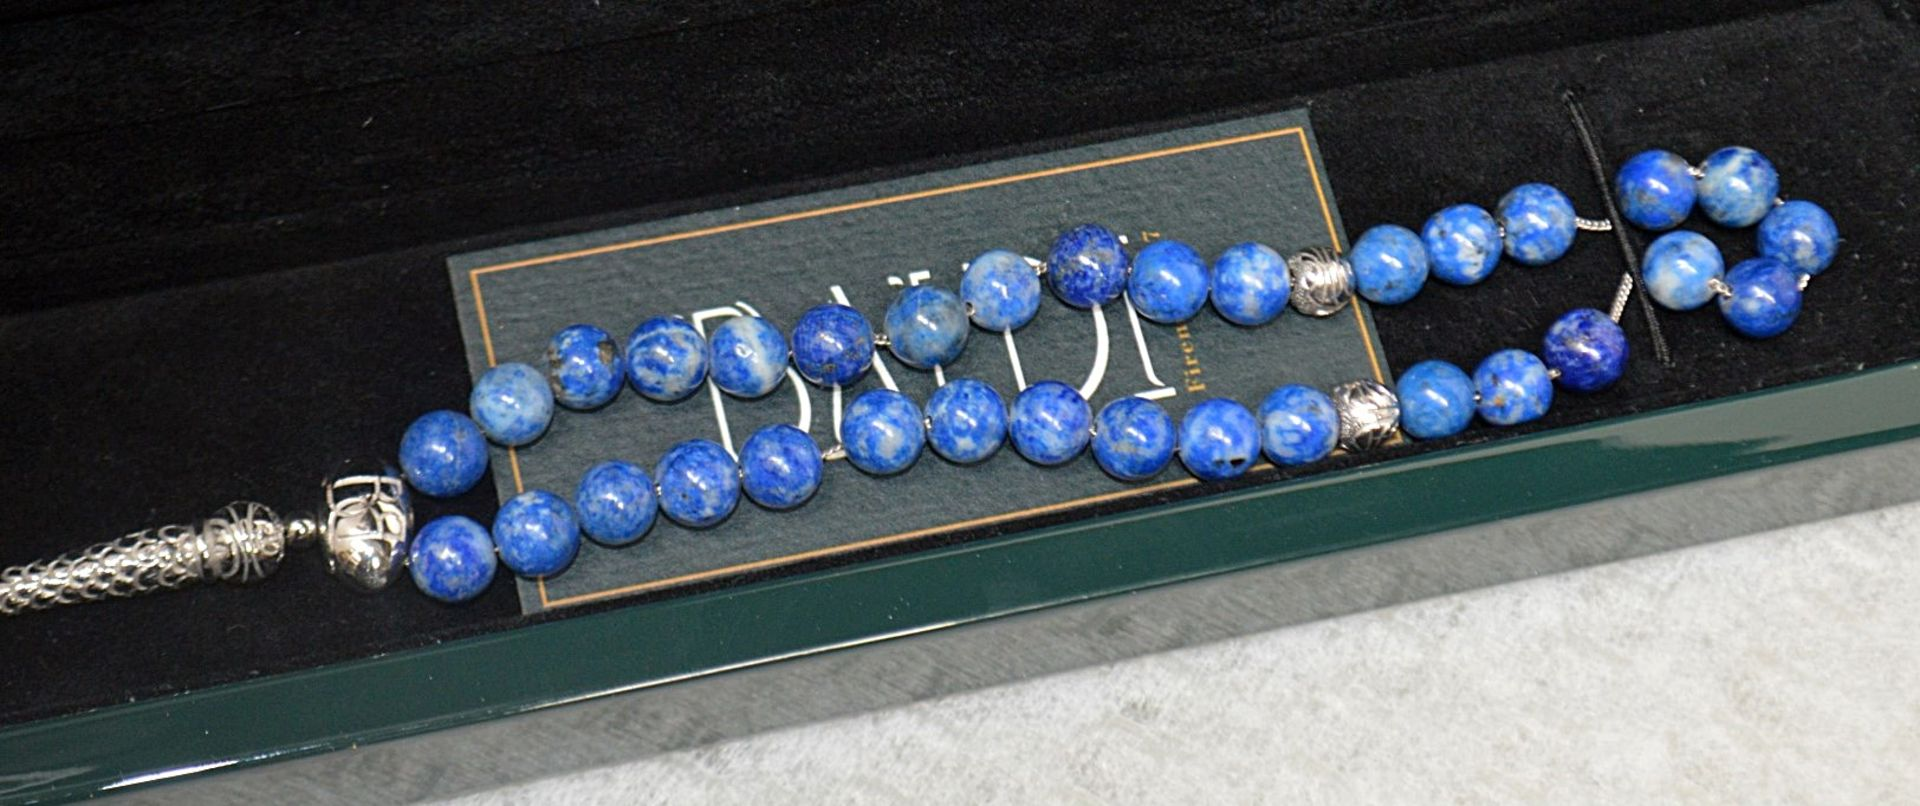 1 x BALDI 'Home Jewels' Italian Hand-crafted Artisan MISBAHA Prayer Beads In Blue Lapis Gemstone And - Image 5 of 5